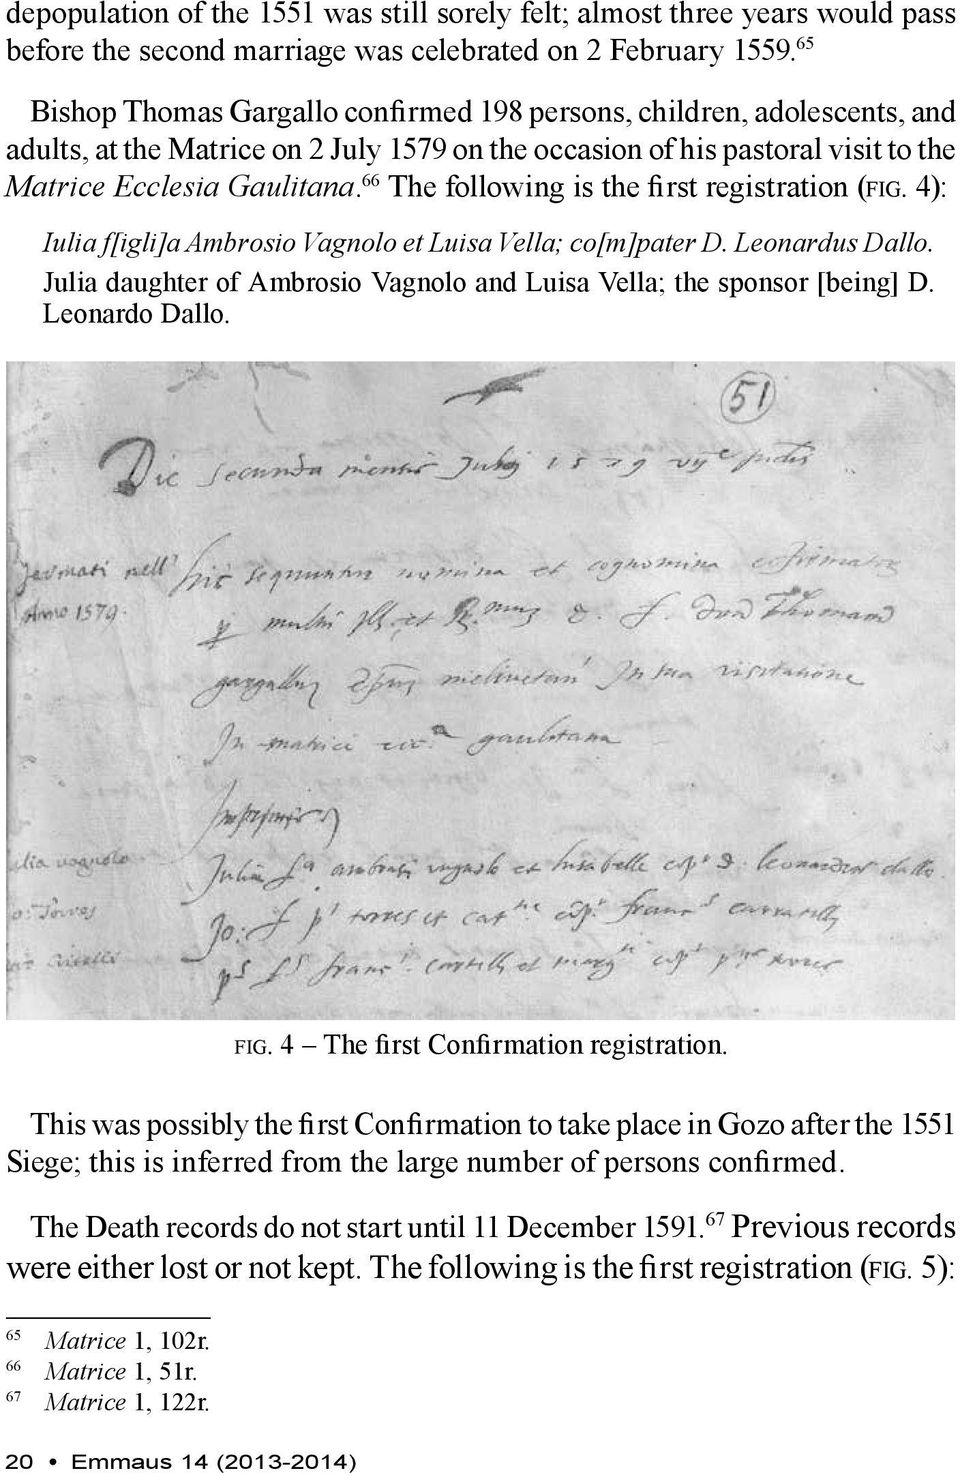 66 The following is the first registration (fig. 4): Iulia f[igli]a Ambrosio Vagnolo et Luisa Vella; co[m]pater D. Leonardus Dallo.